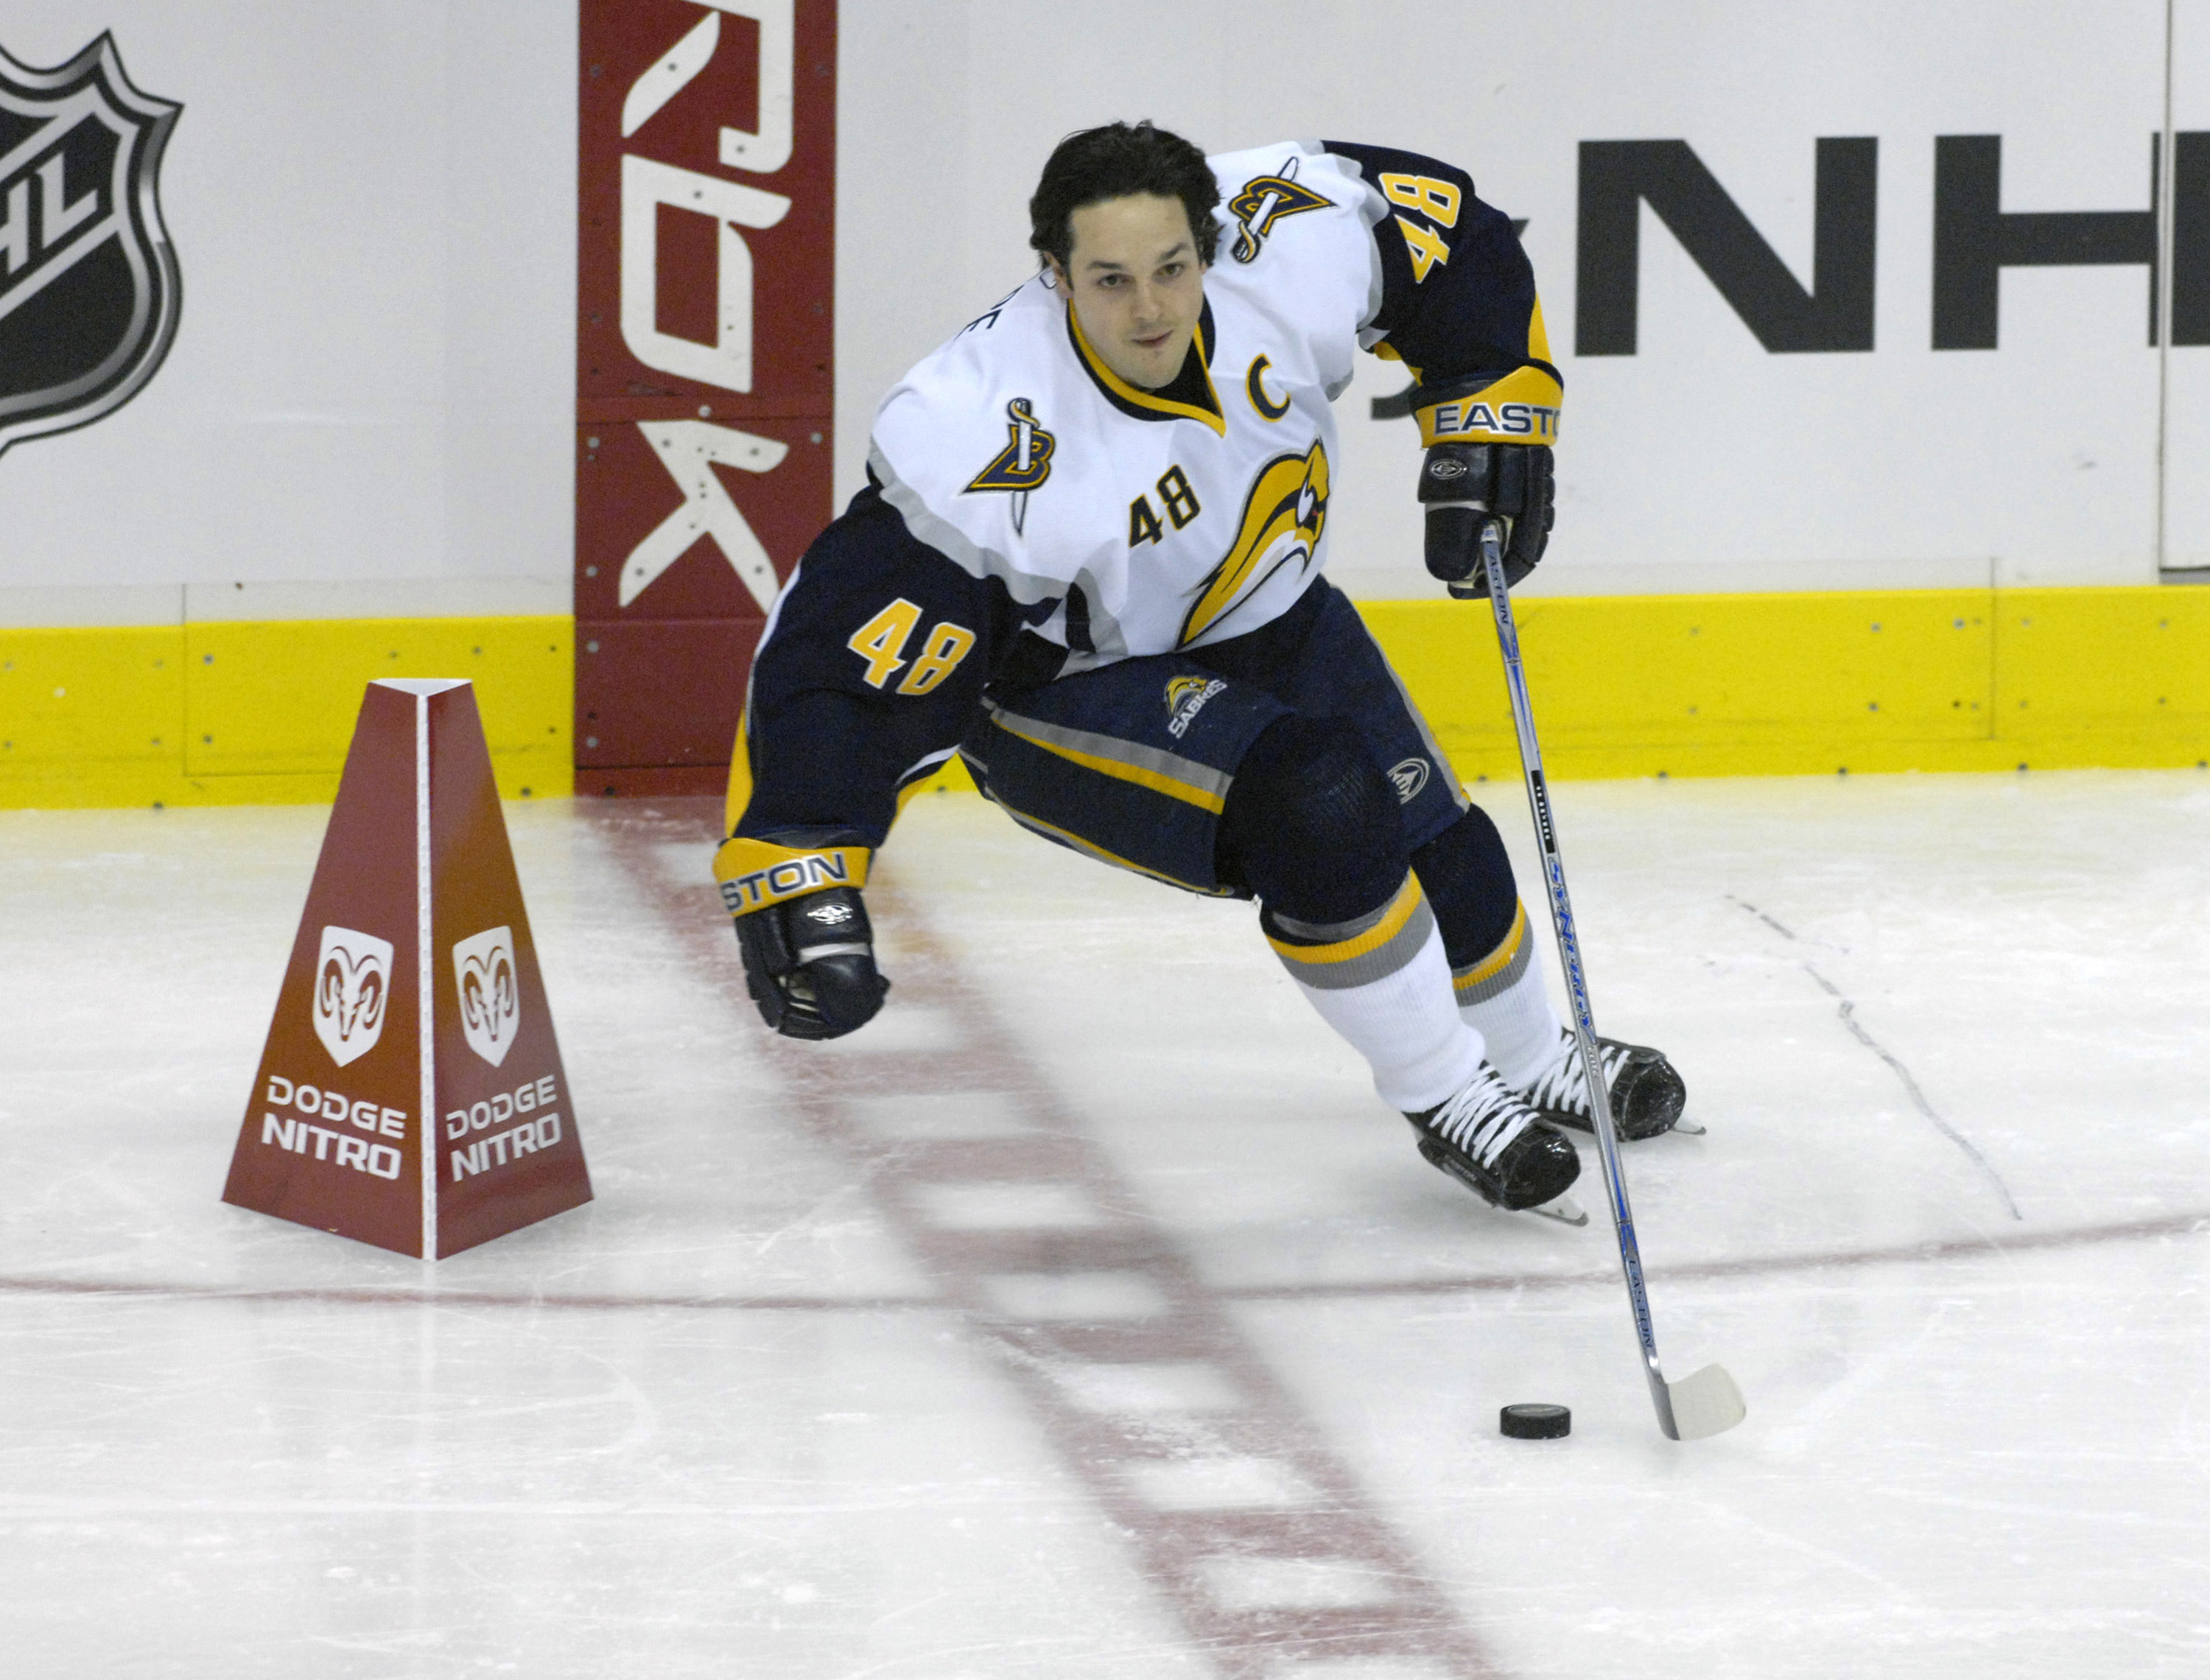 After being acquired in a selling year, Daniel Briere became an All-Star for Buffalo. (Getty Images)